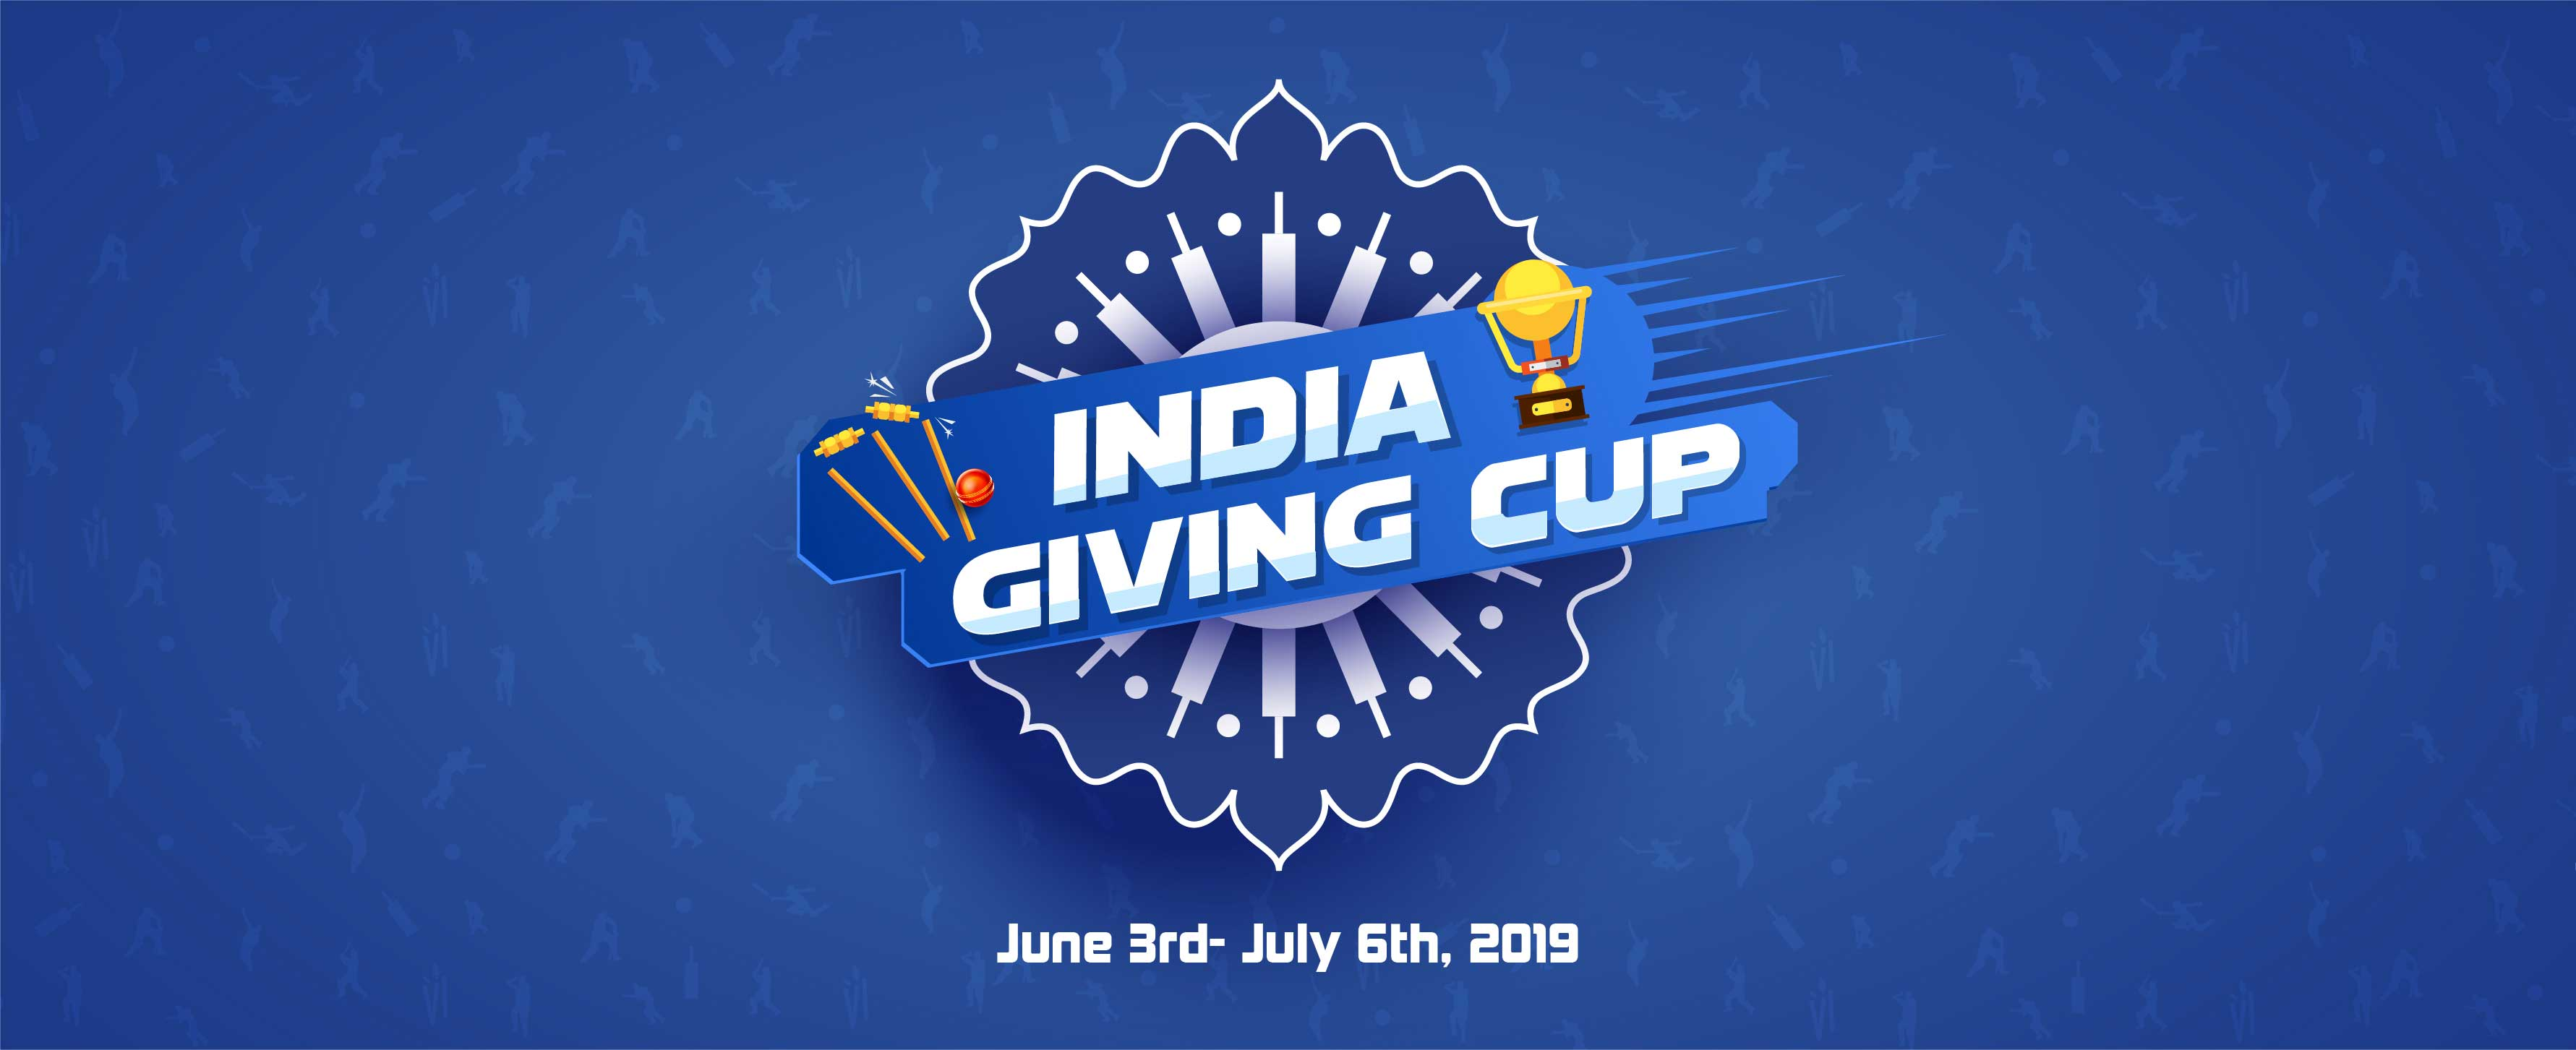 India Giving Cup 2019